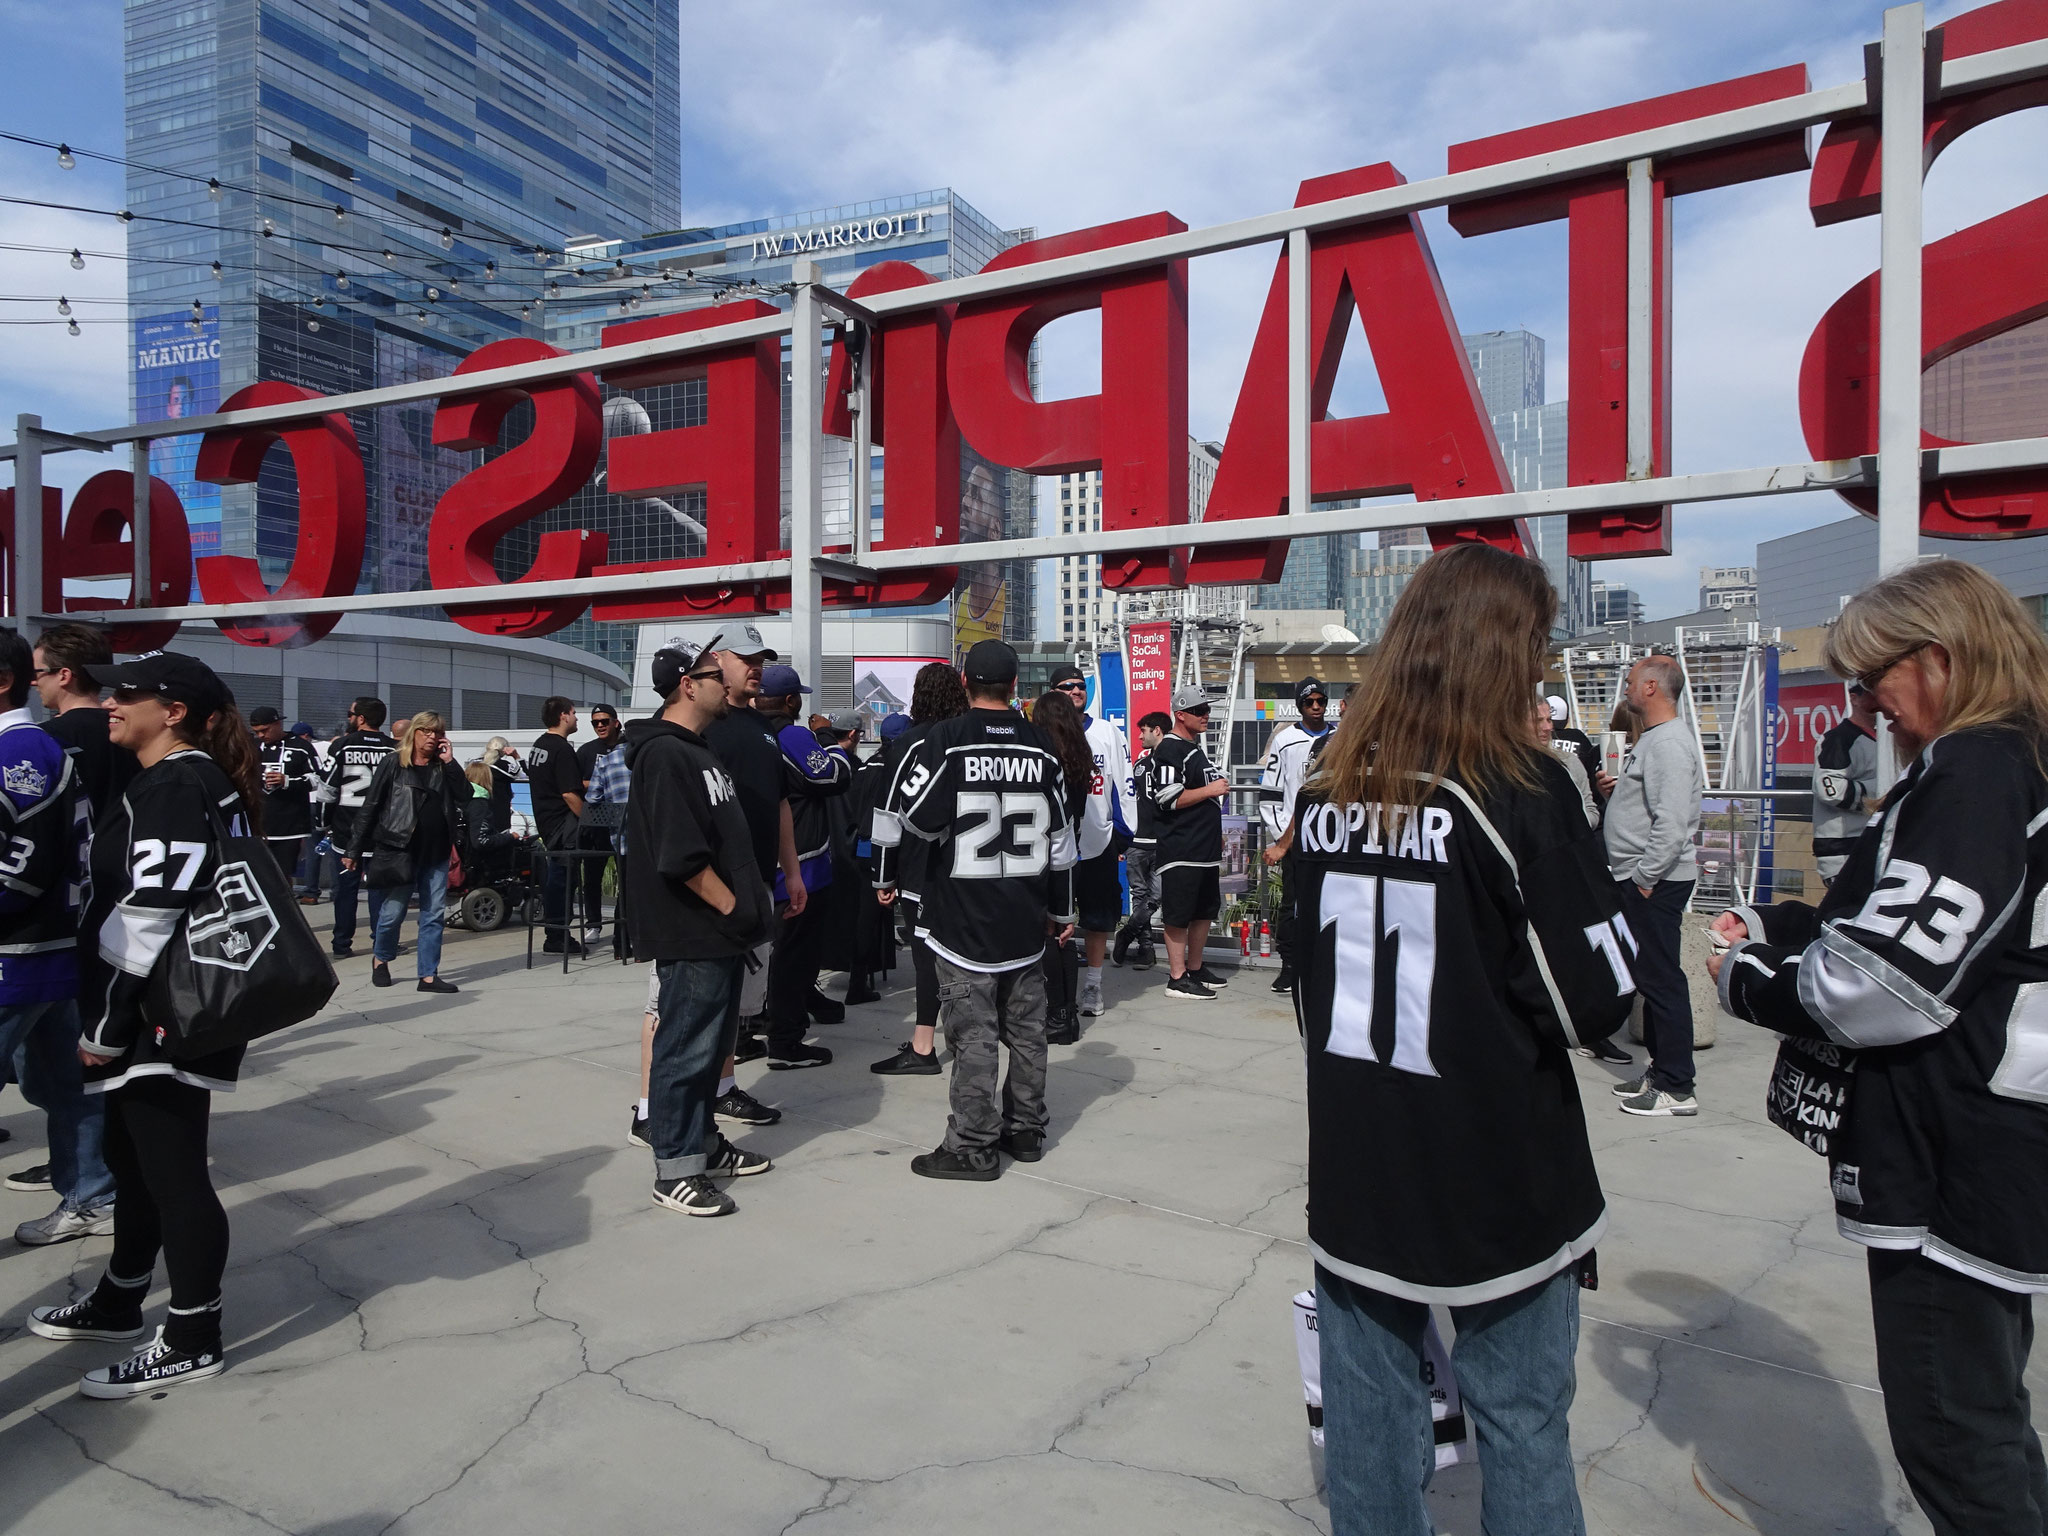 Terrasse du Staples Center lors de Los Angeles Kings vs New York Rangers